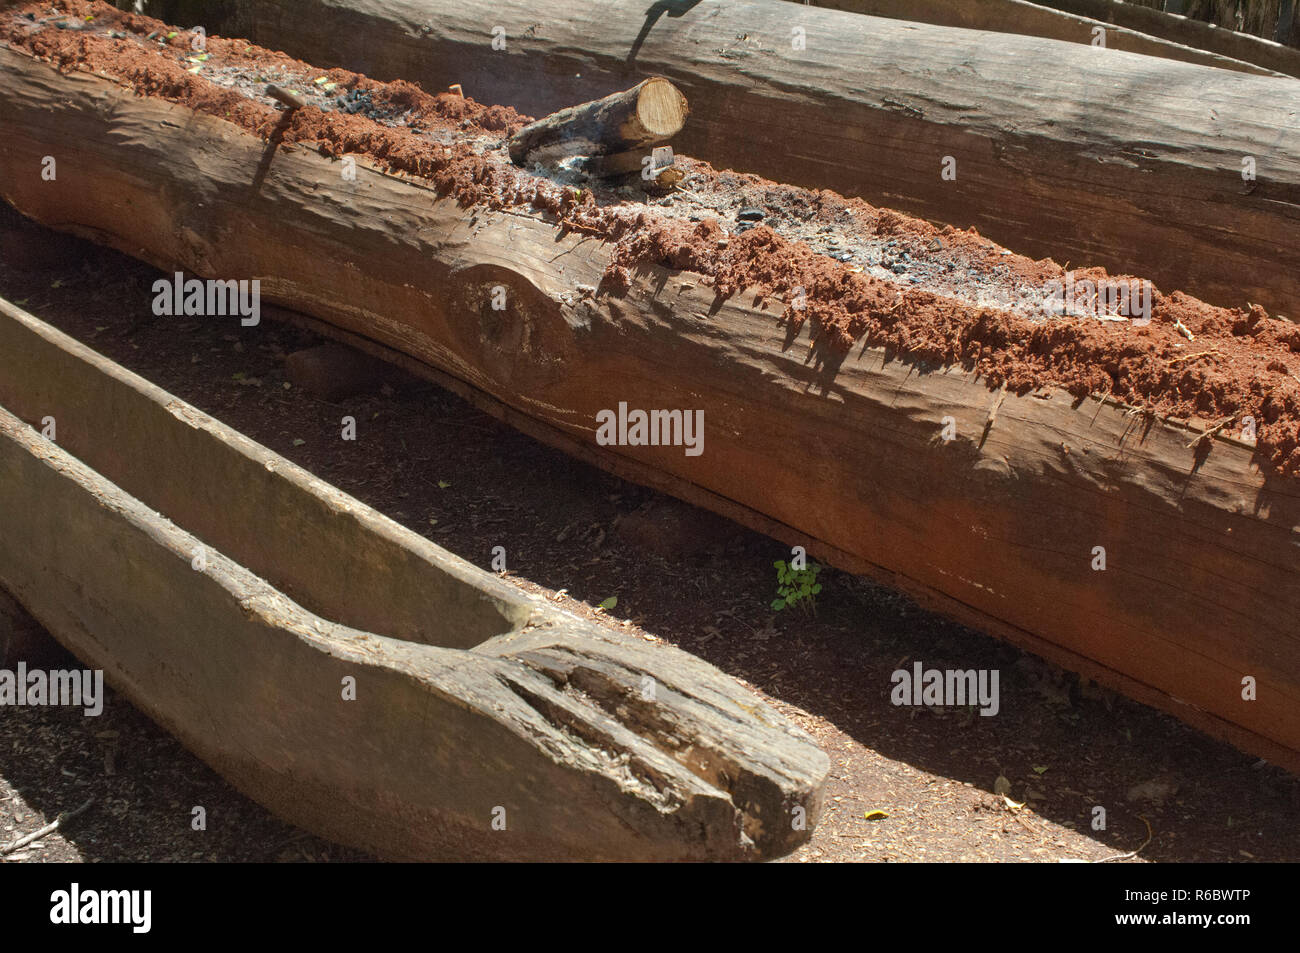 Dugout canoe construction using fire to trench a log, Qualla Cherokee Reservation, North Carolina. Digital photograph - Stock Image